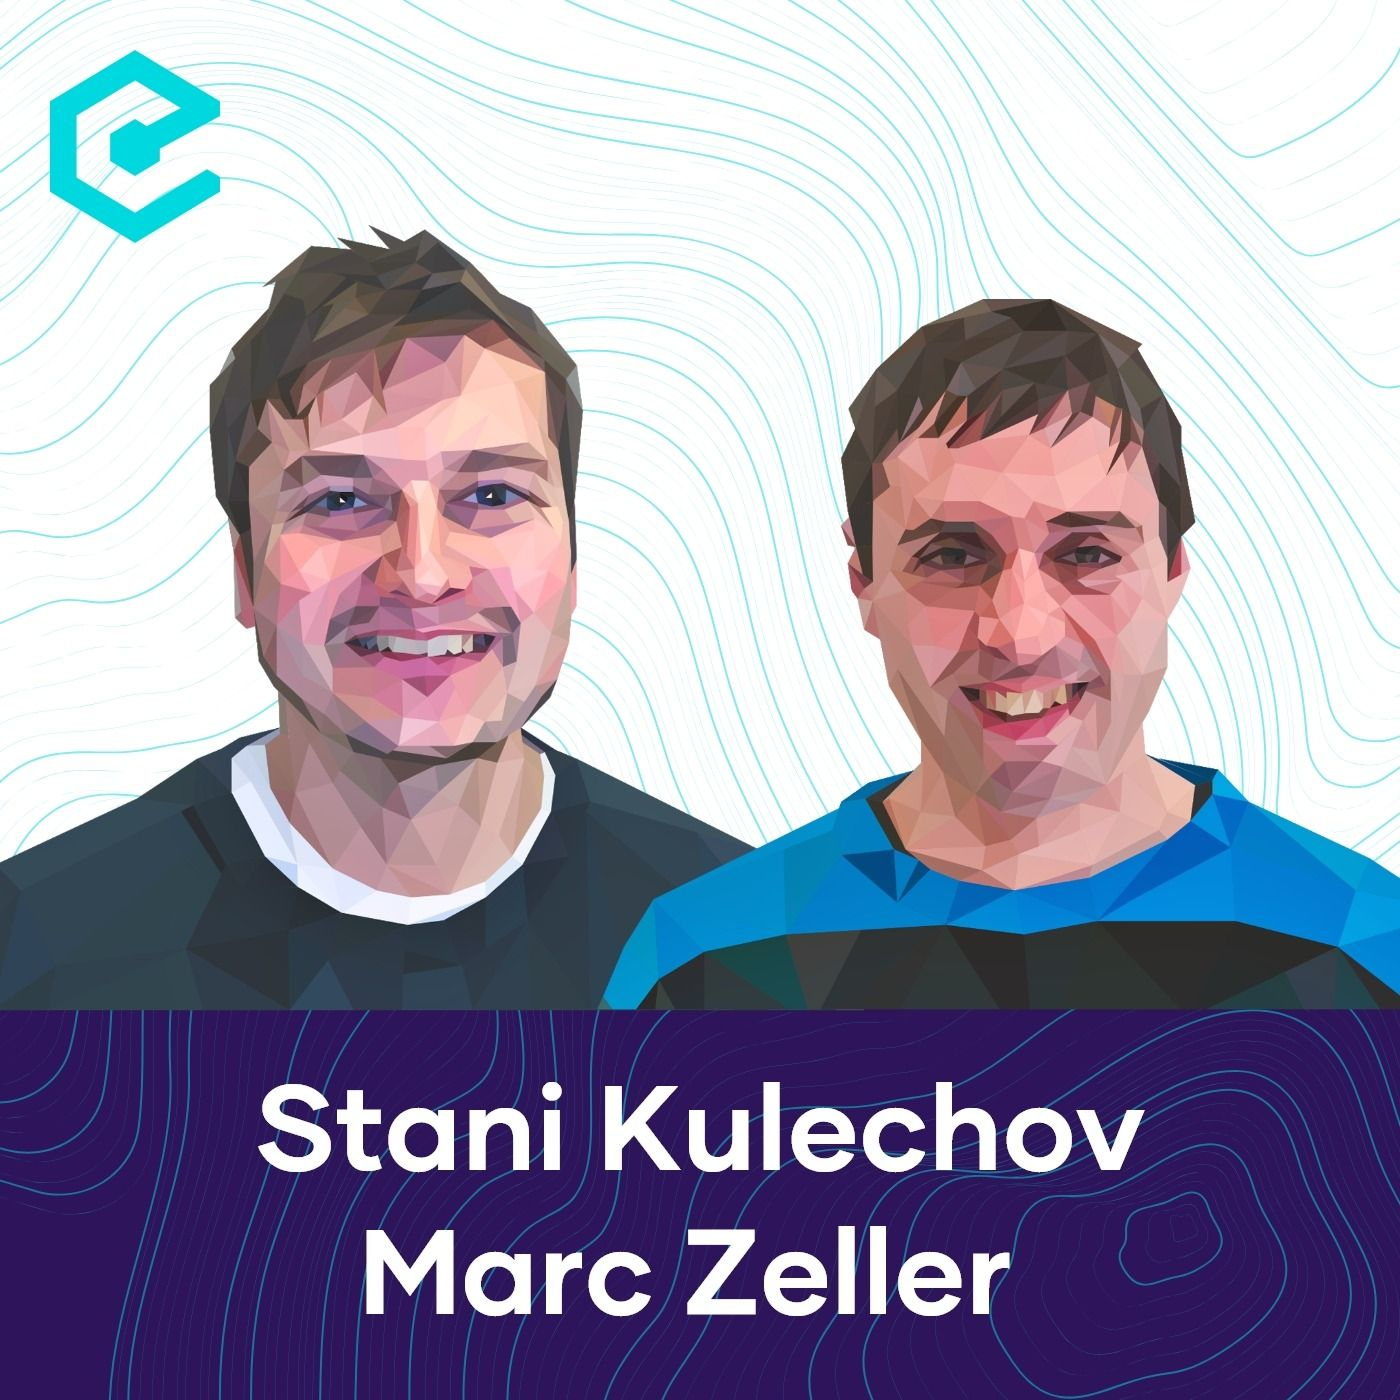 Marc Zeller & Stani Kulechov: Aave – Unlocking Access to Capital With Flash Loans